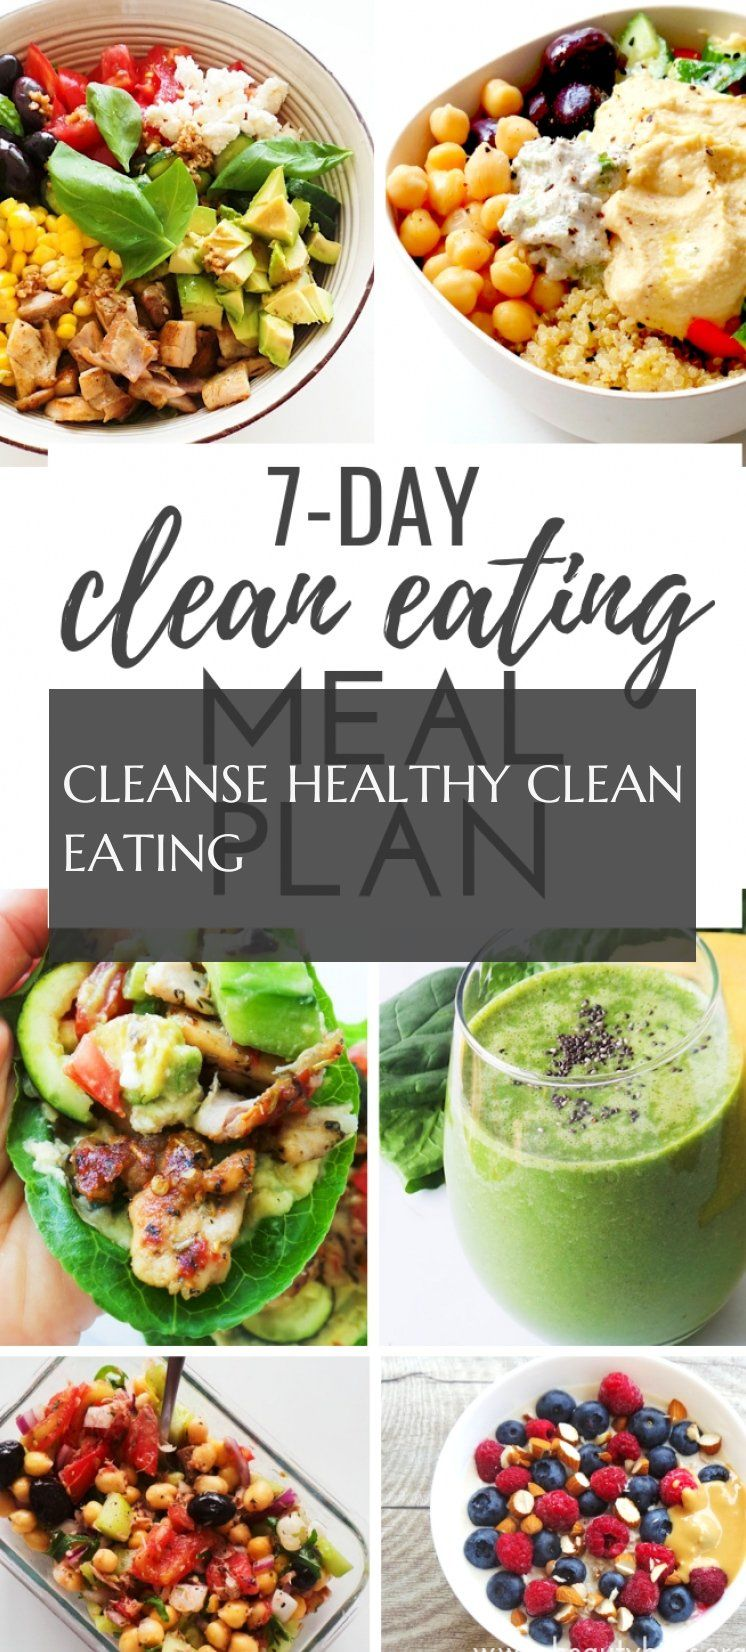 Cleanse Healthy Clean Eating Reinigen Gesund Sauber Essen